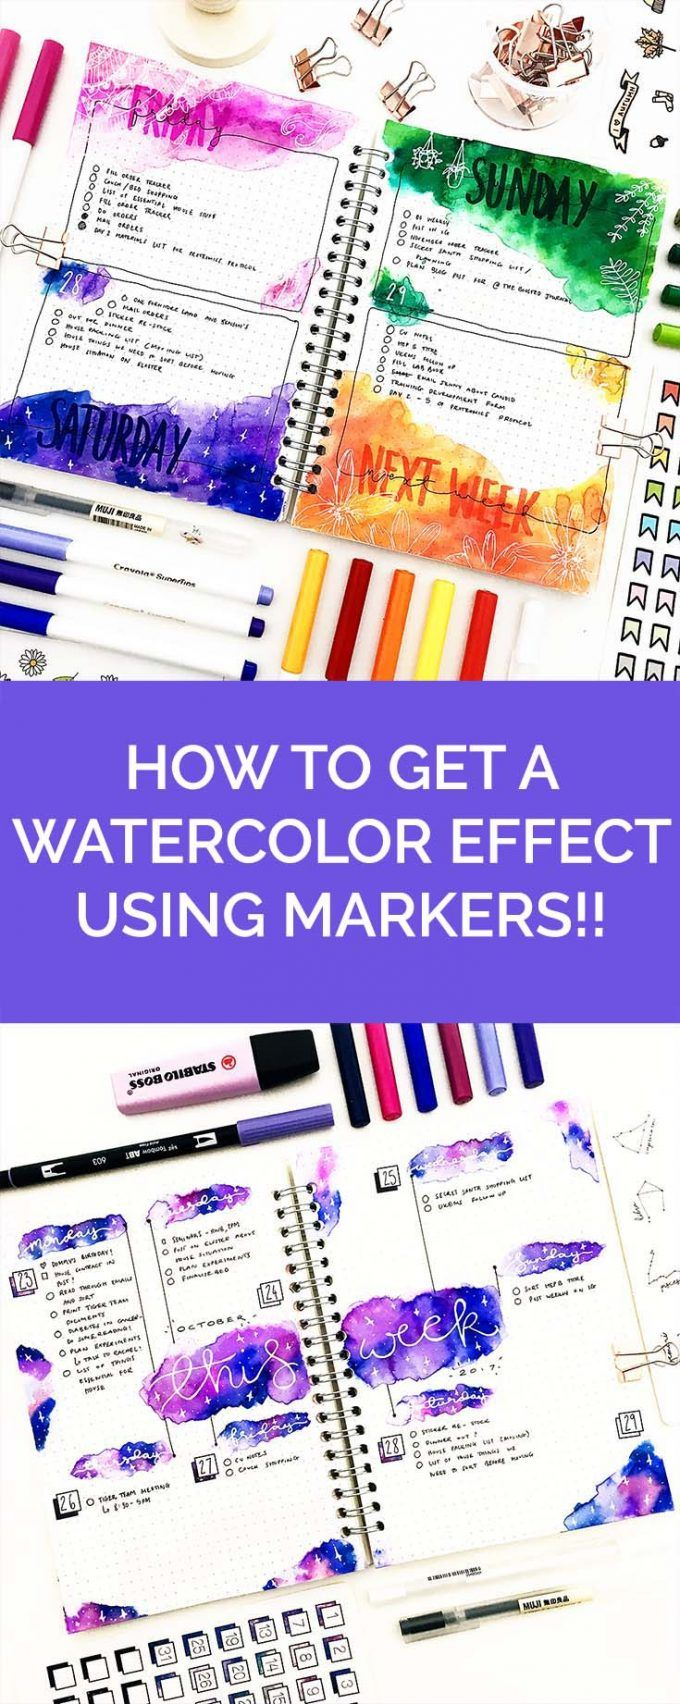 Bujo Beautifully: How to Get the Effect of Watercolor with Markers #bulletjournal #bulletjournalideas #planner https://productiveandpretty.com/watercolor-with-makers/?utm_campaign=coschedule&utm_source=pinterest&utm_medium=Productive%20and%20Pretty&utm_content=Bujo%20Beautifully%3A%20How%20to%20Get%20the%20Effect%20of%20Watercolor%20with%20Markers